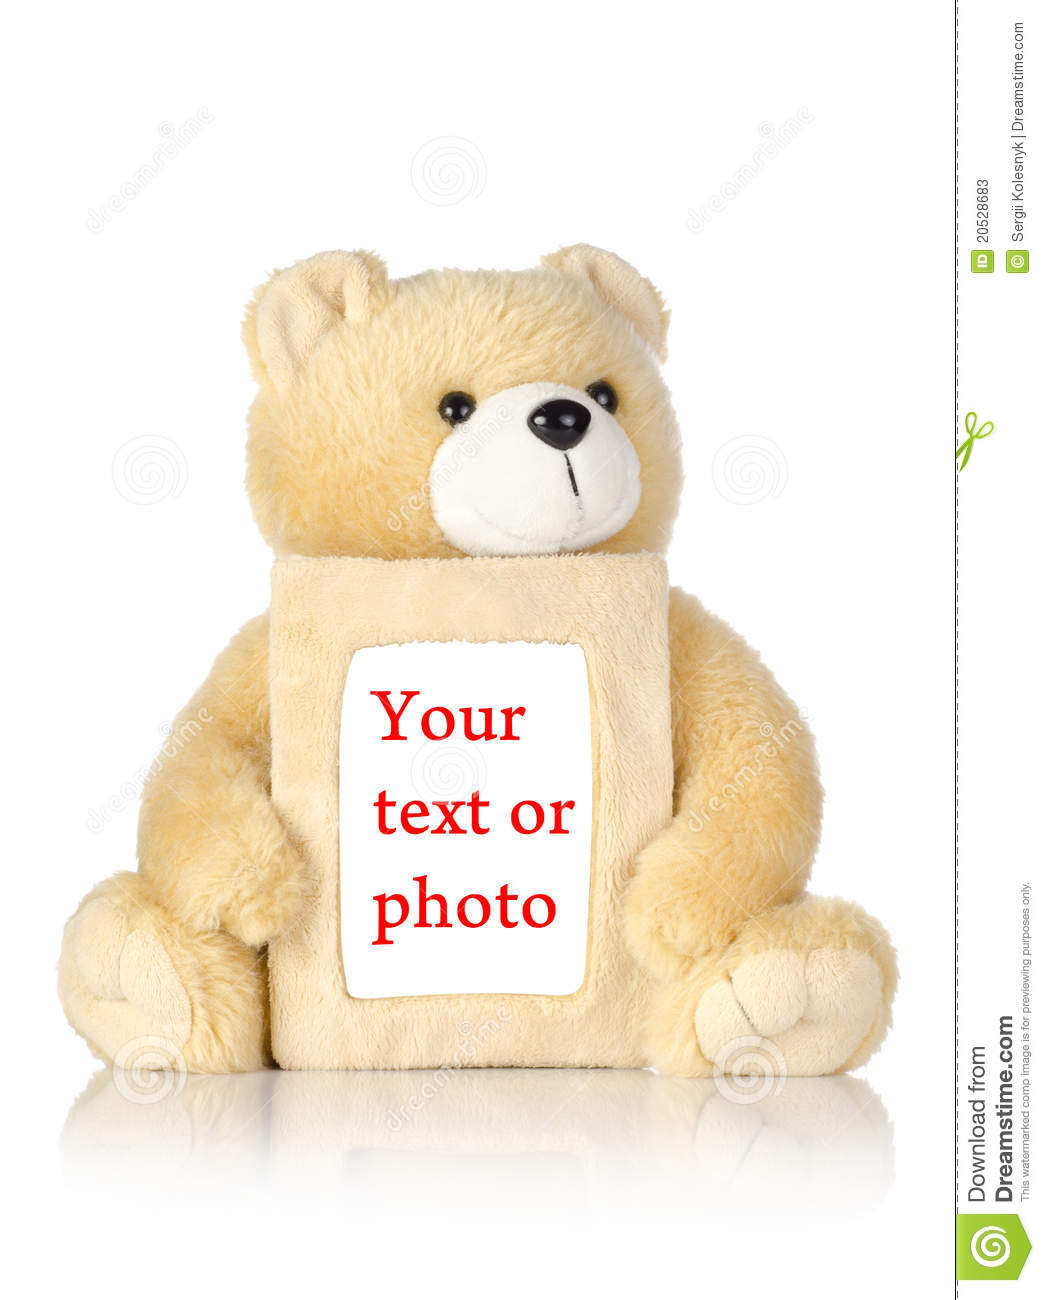 Teddy Bear With Photo Frame Stock Photo 20528683 - Megapixl